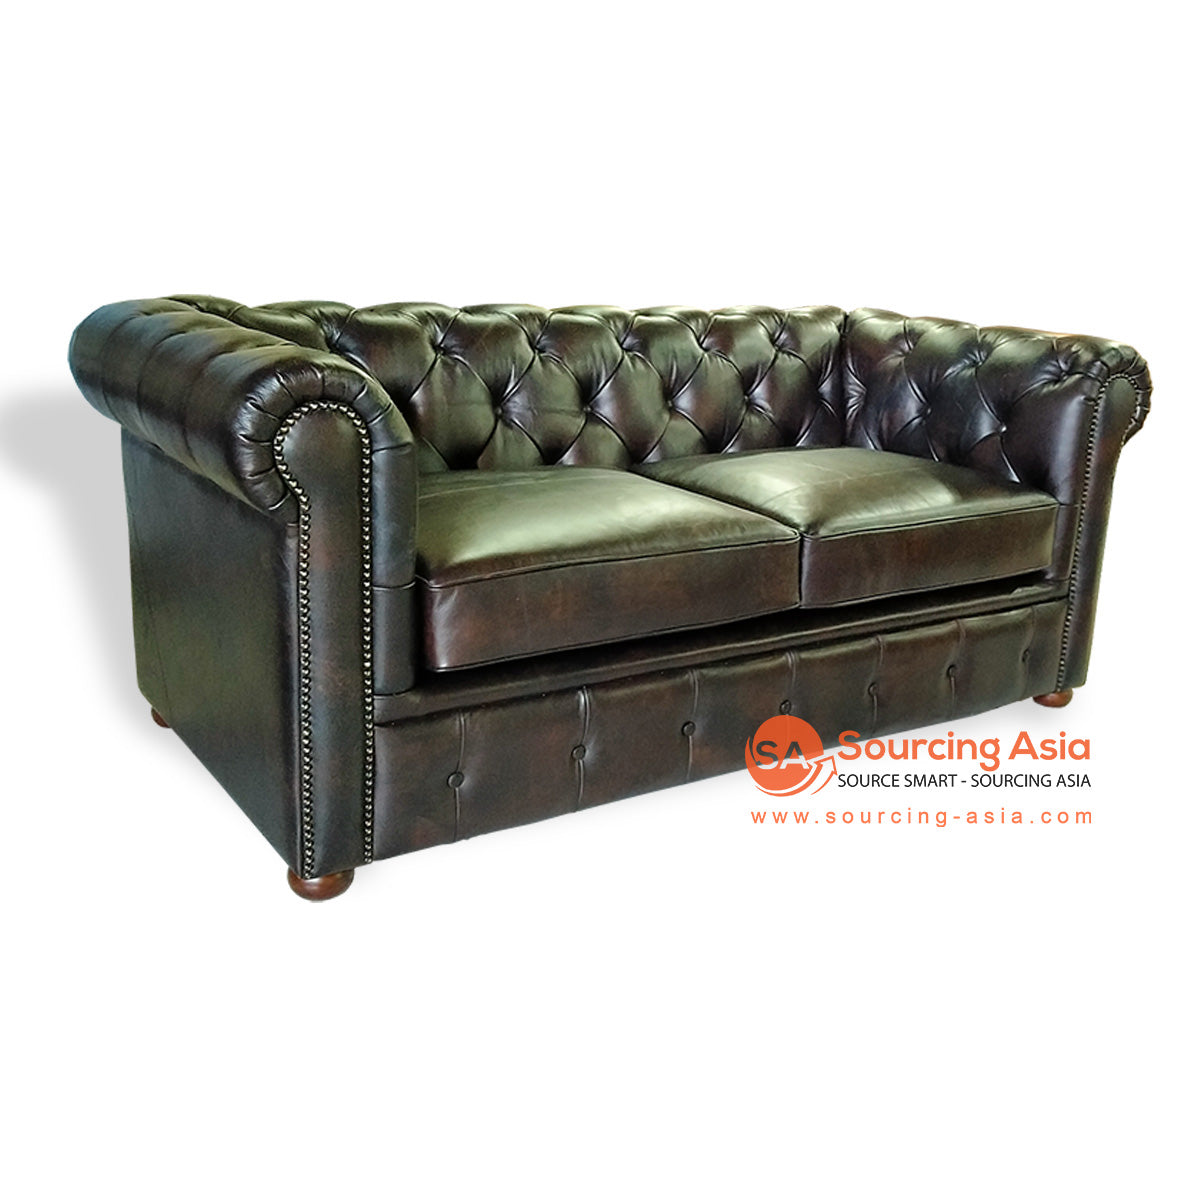 CCM028 CHESTERFIELD LEATHER SOFA